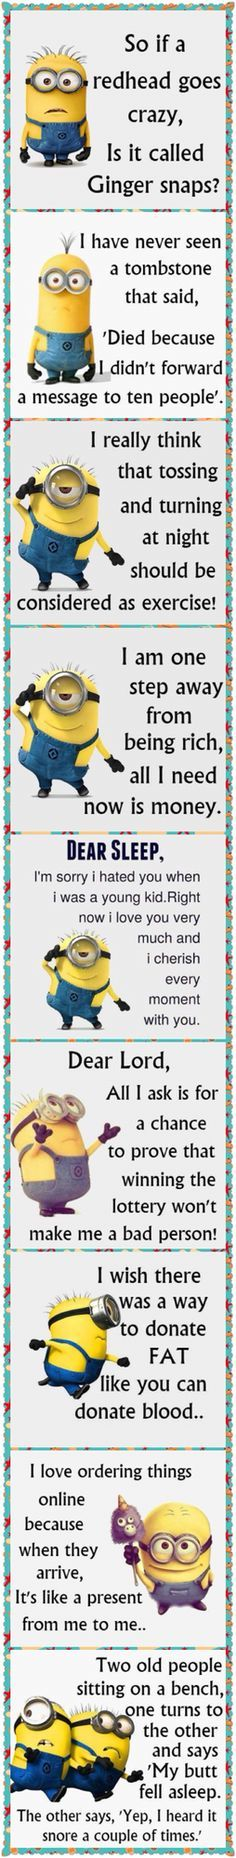 36 Ideas funny signs humor hilarious minions quotes for 2019 Minion Humour, Funny Minion Memes, Minions Quotes, Funny Texts, Minion Sayings, Epic Texts, Funny Jokes, Minion Pictures, Funny Pictures